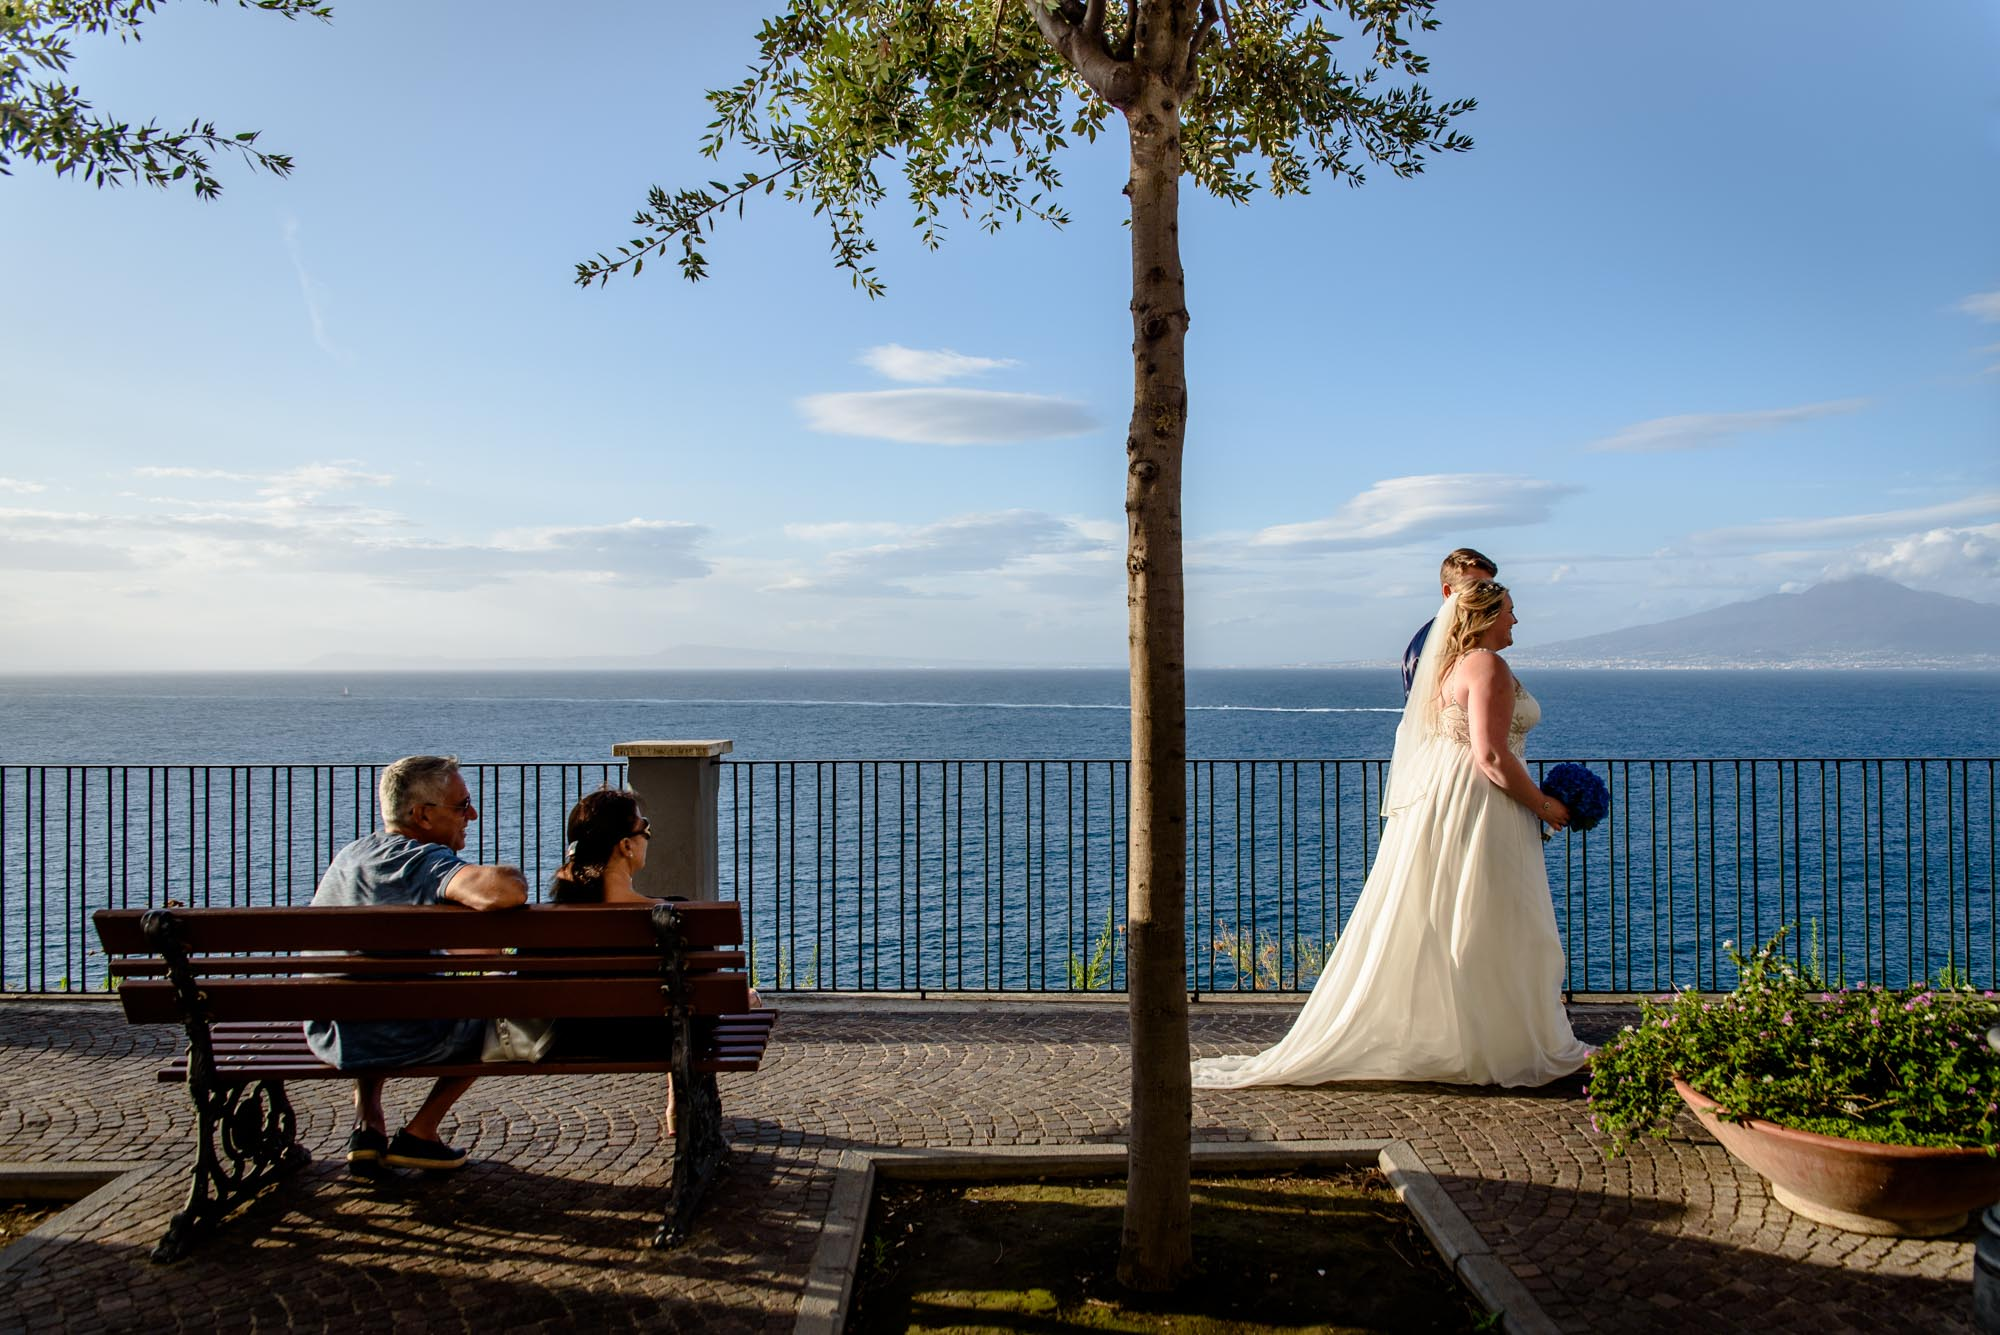 Wedding photography in Sorrento